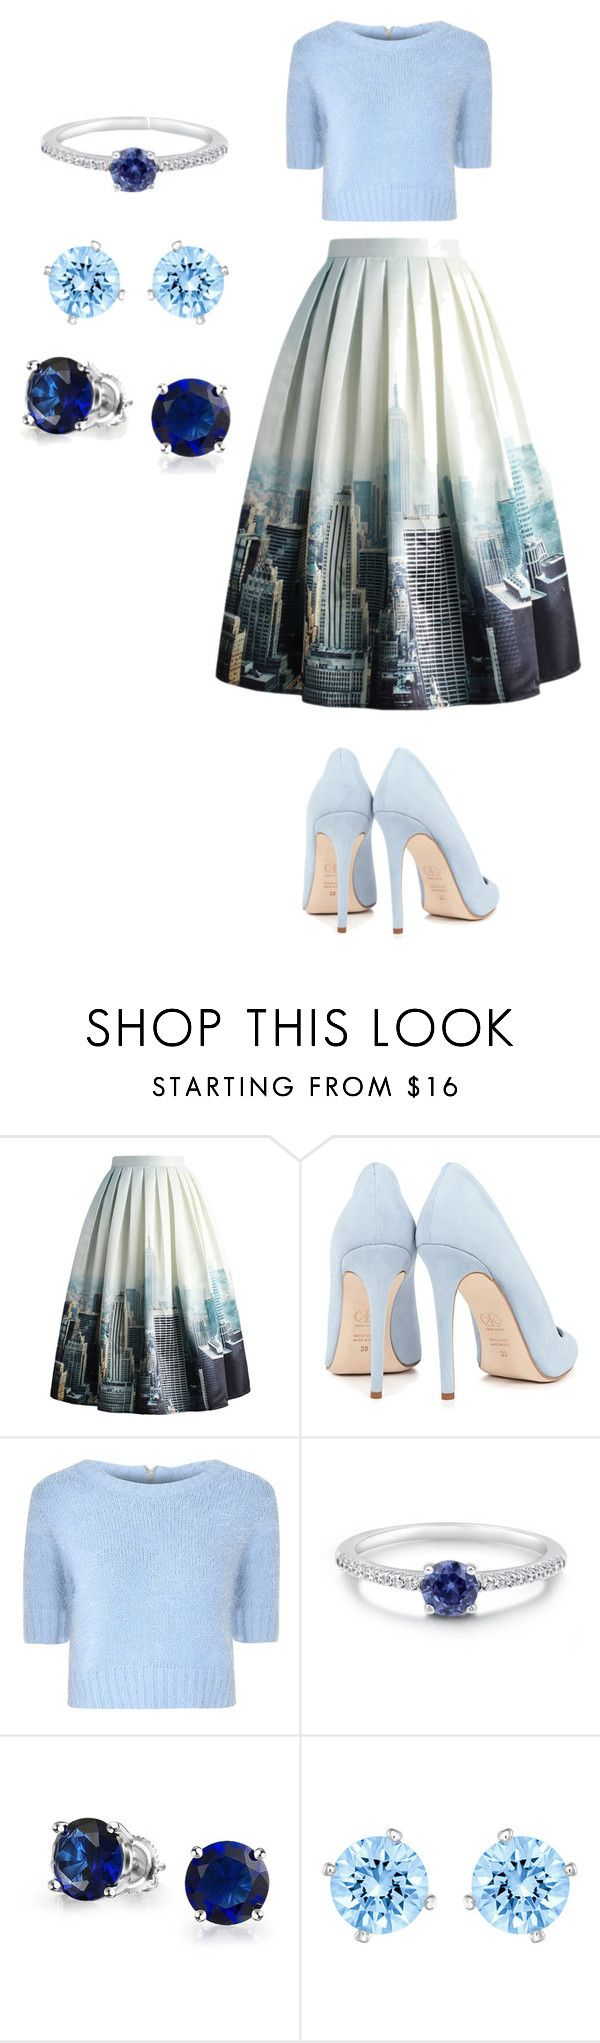 """City"" by preemiepeanut ❤ liked on Polyvore featuring interior, interiors, interior design, hogar, home decor, interior decorating, Chicwish, Dee Keller, Glamorous y BERRICLE"